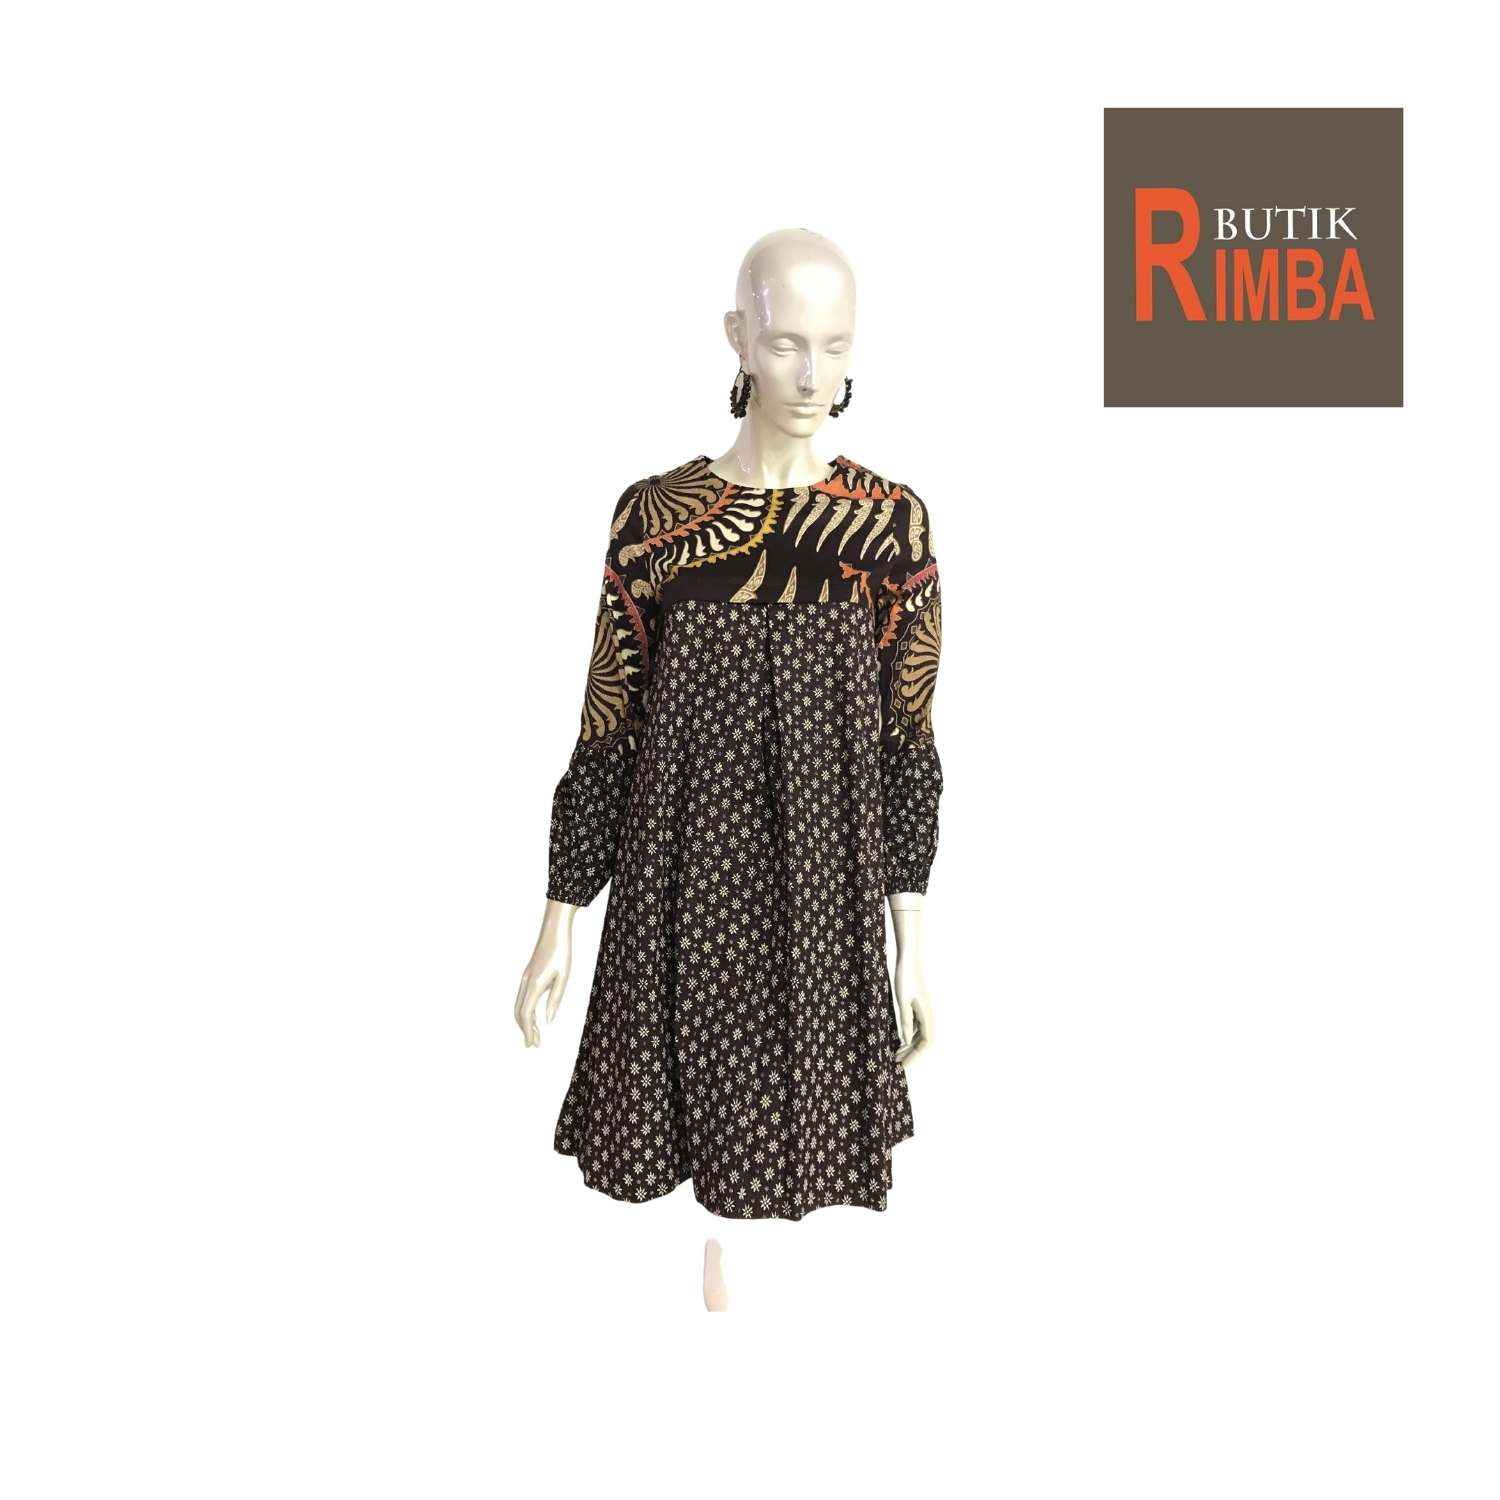 MODERN DRESS BATIK COTTON STRETCHABLE KNEE LENGTH FREE SIZE FOR FASHIONABLE WOMEN IN MIND 04